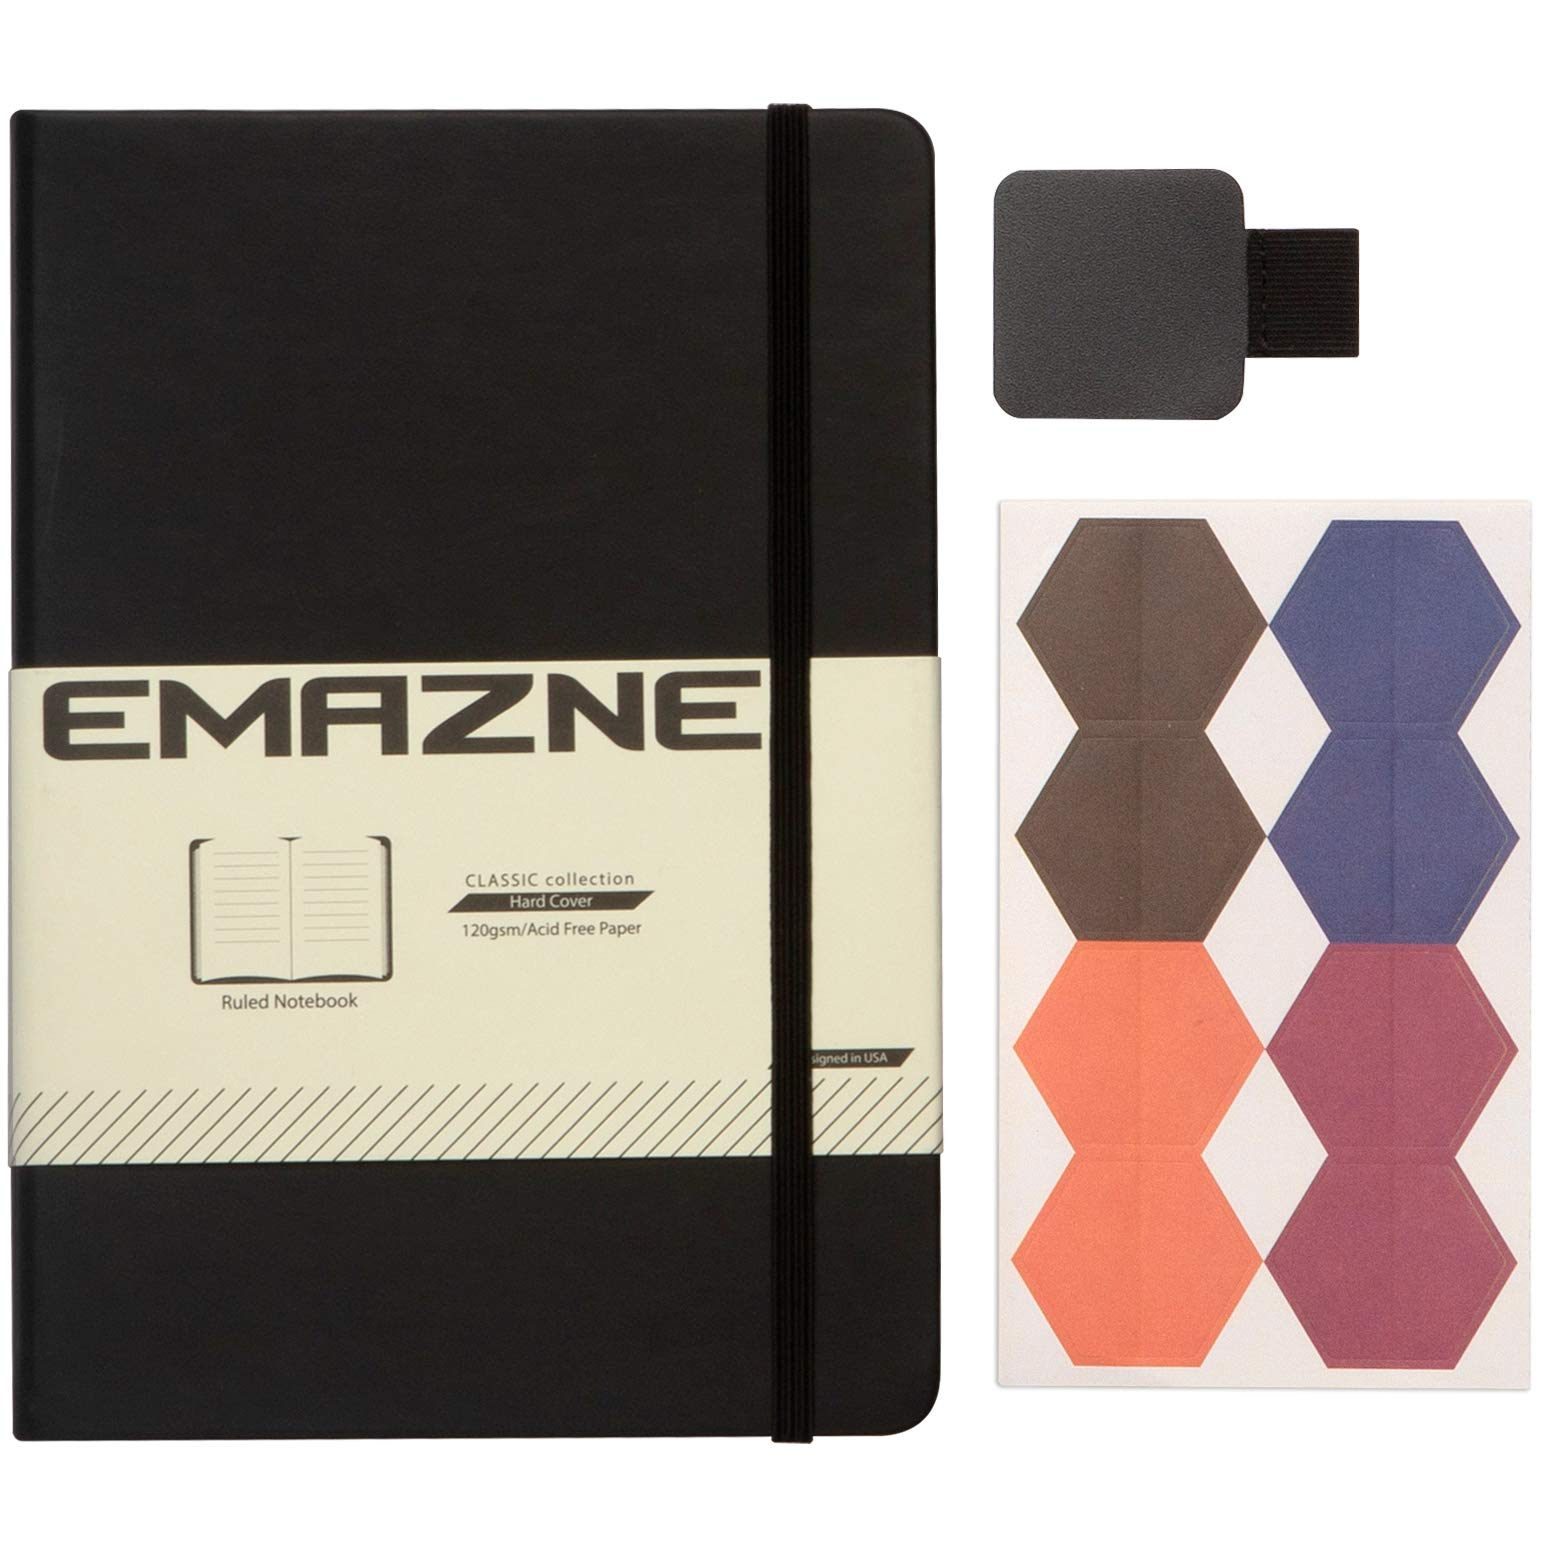 """Emazne Ruled Pages Black Classic Hardcover Notebook with Pen Loop,Bookmark,Size:A5 (5.7"""" x 8.25""""),Premium Thick 120gsm Paper,PU Leather,Inner Pocket,(Free Gift-Tabs Flags)